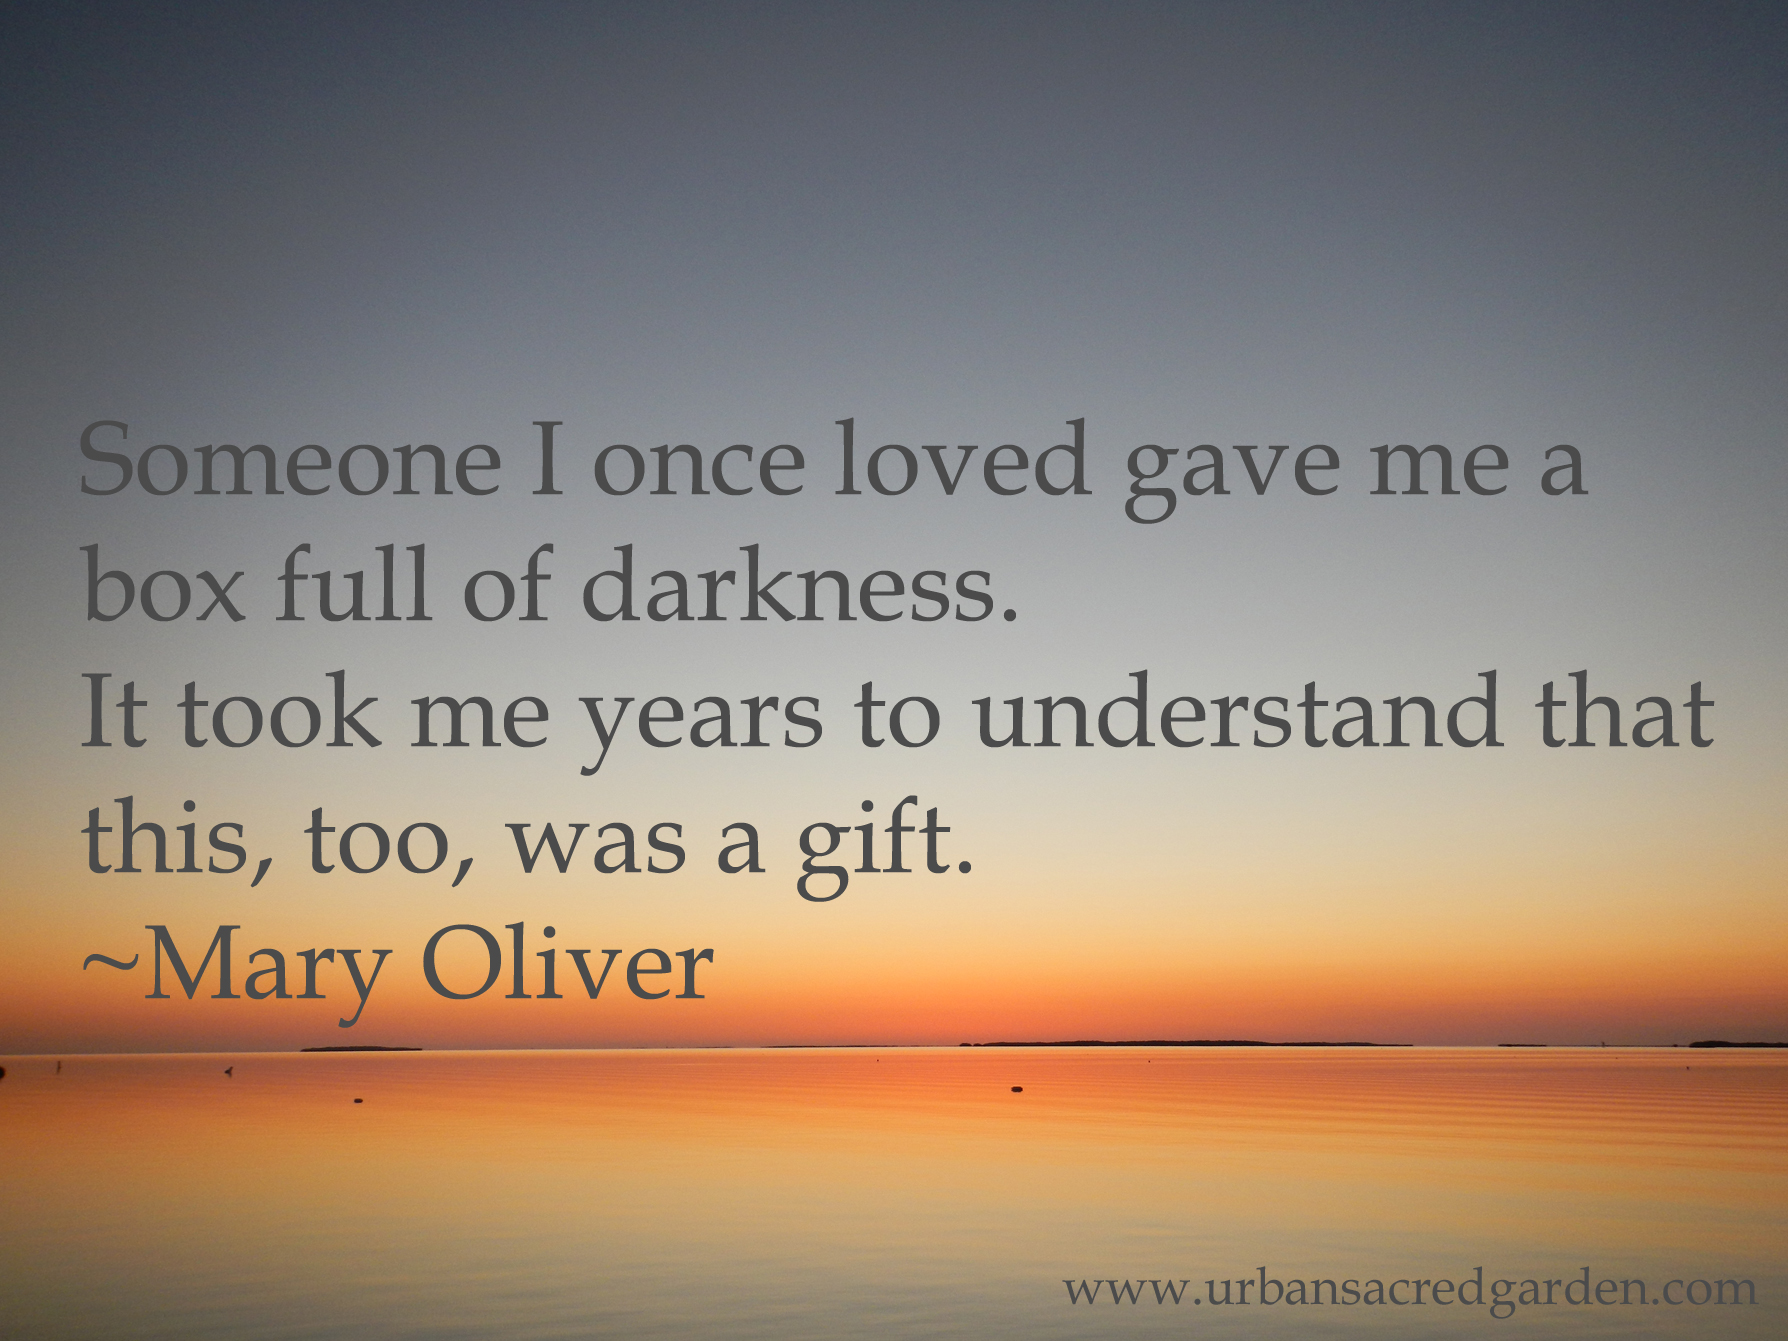 Mary Oliver's quote #1